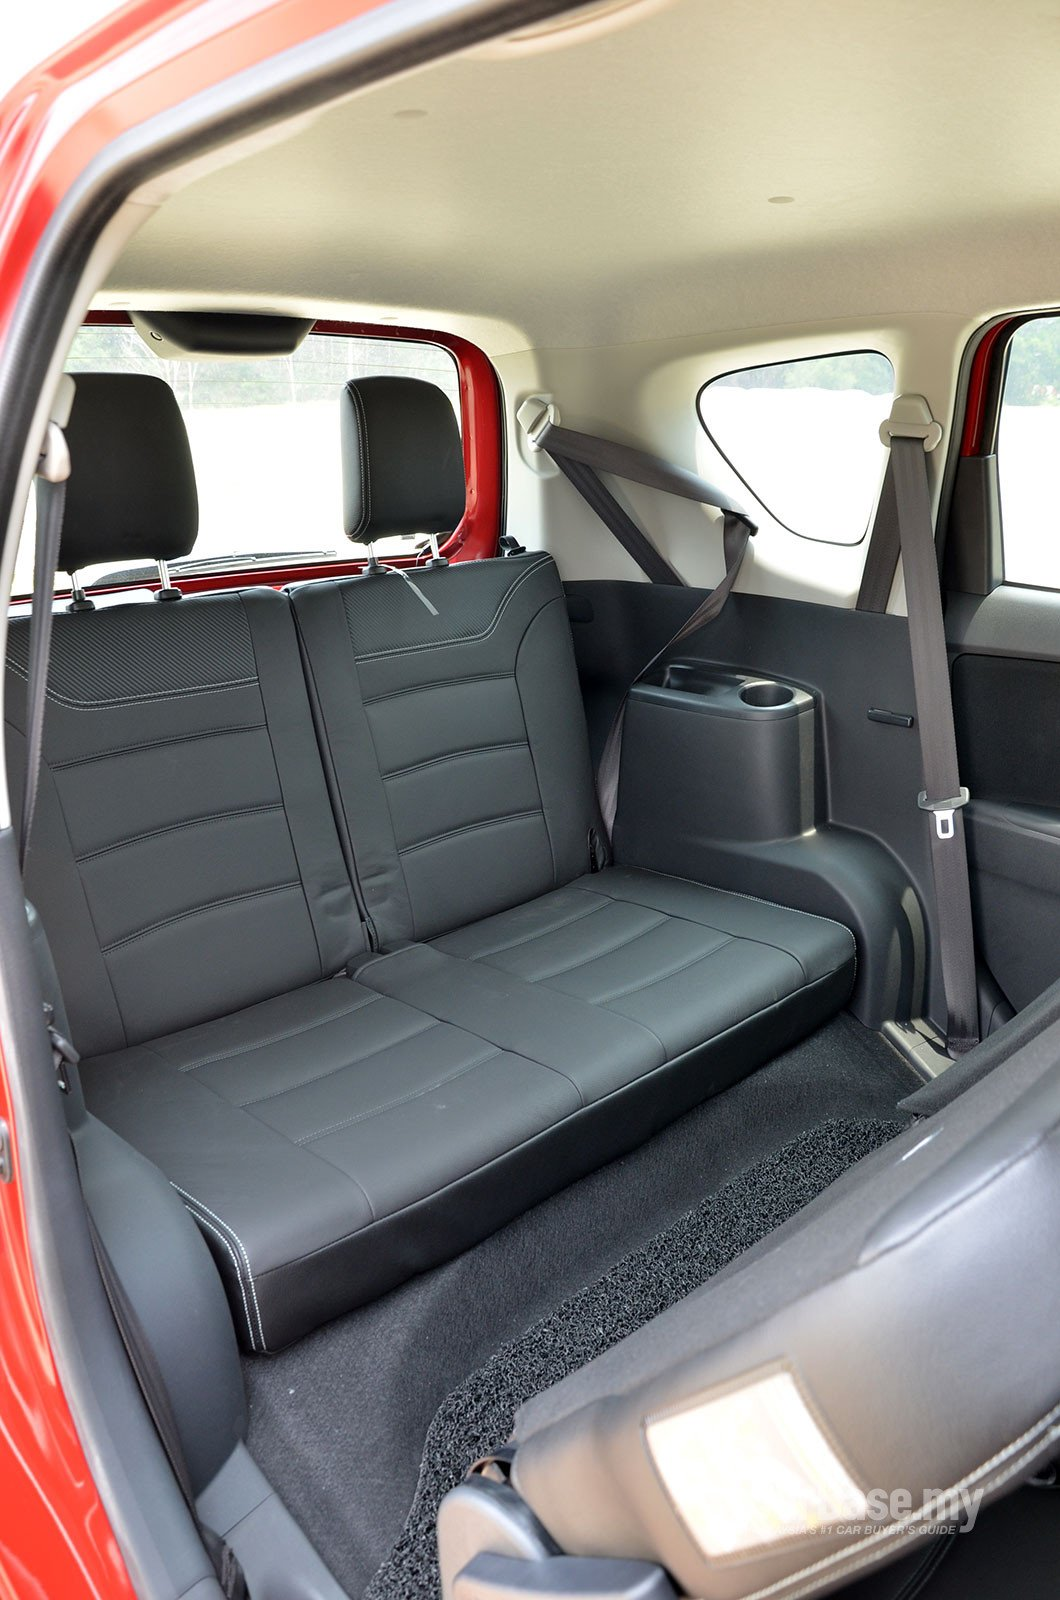 Make Your Own Car >> Perodua Alza Mk1 Facelift (2014) Interior Image #398 in Malaysia - Reviews, Specs, Prices ...